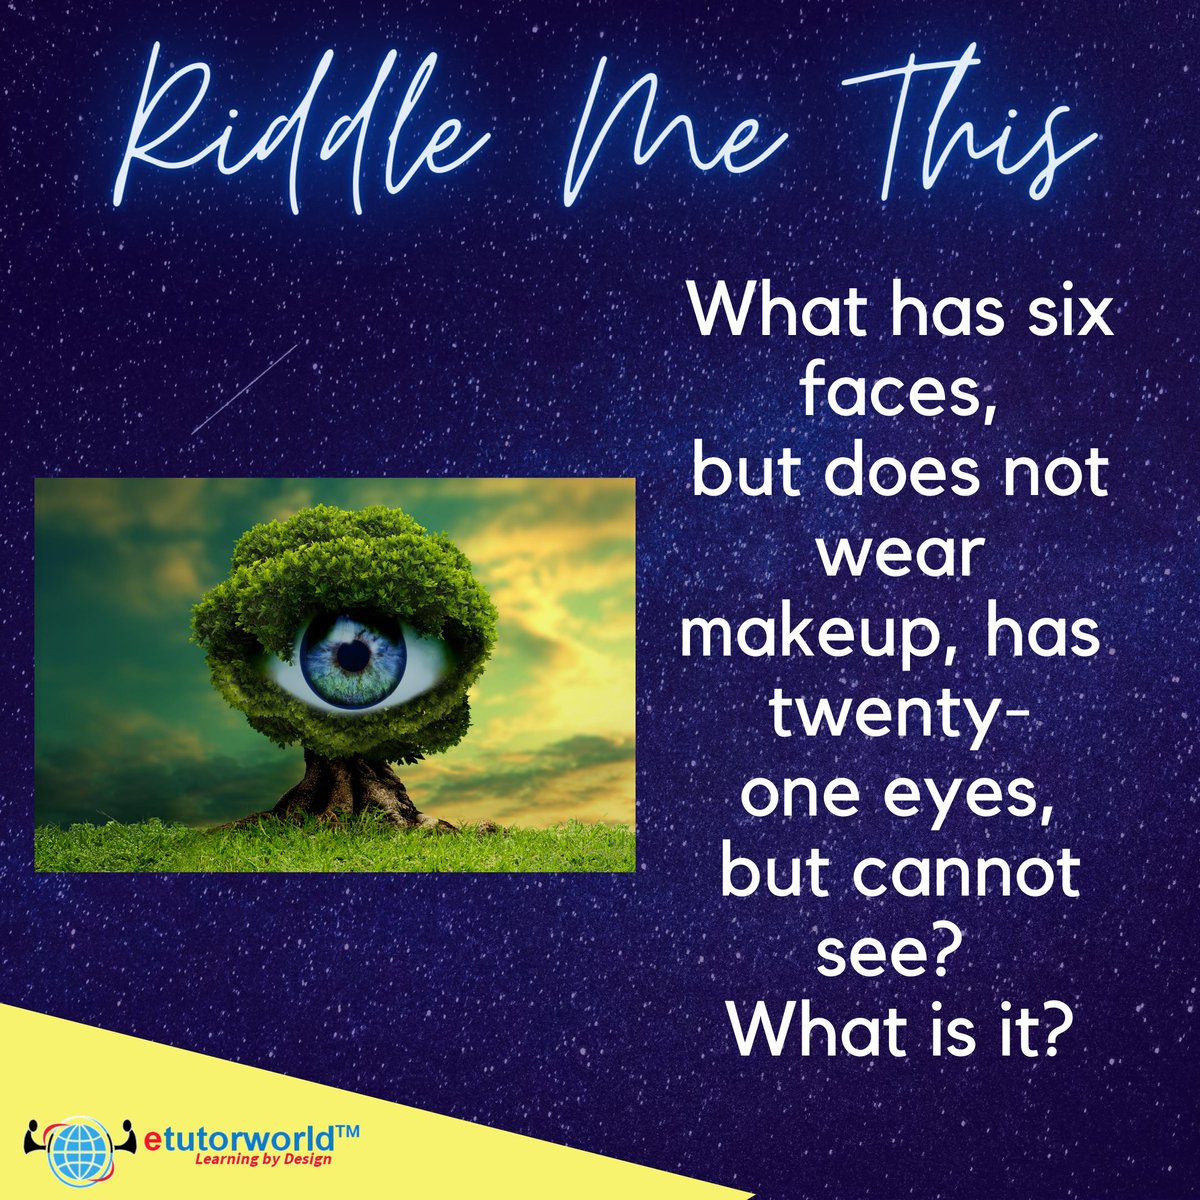 #riddles #puzzles #riddle #puzzle #escaperoom #brainteasers #brainteaser #games #riddlemethis #clues #riddleoftheday #escape #riddlestory #riddler #math #quiz #escapegame #escapegames #teamwork #fun #braingames #maths #riddlesdaily #mathematics #mathskills #challengepic.twitter.com/2hLxIPB96y